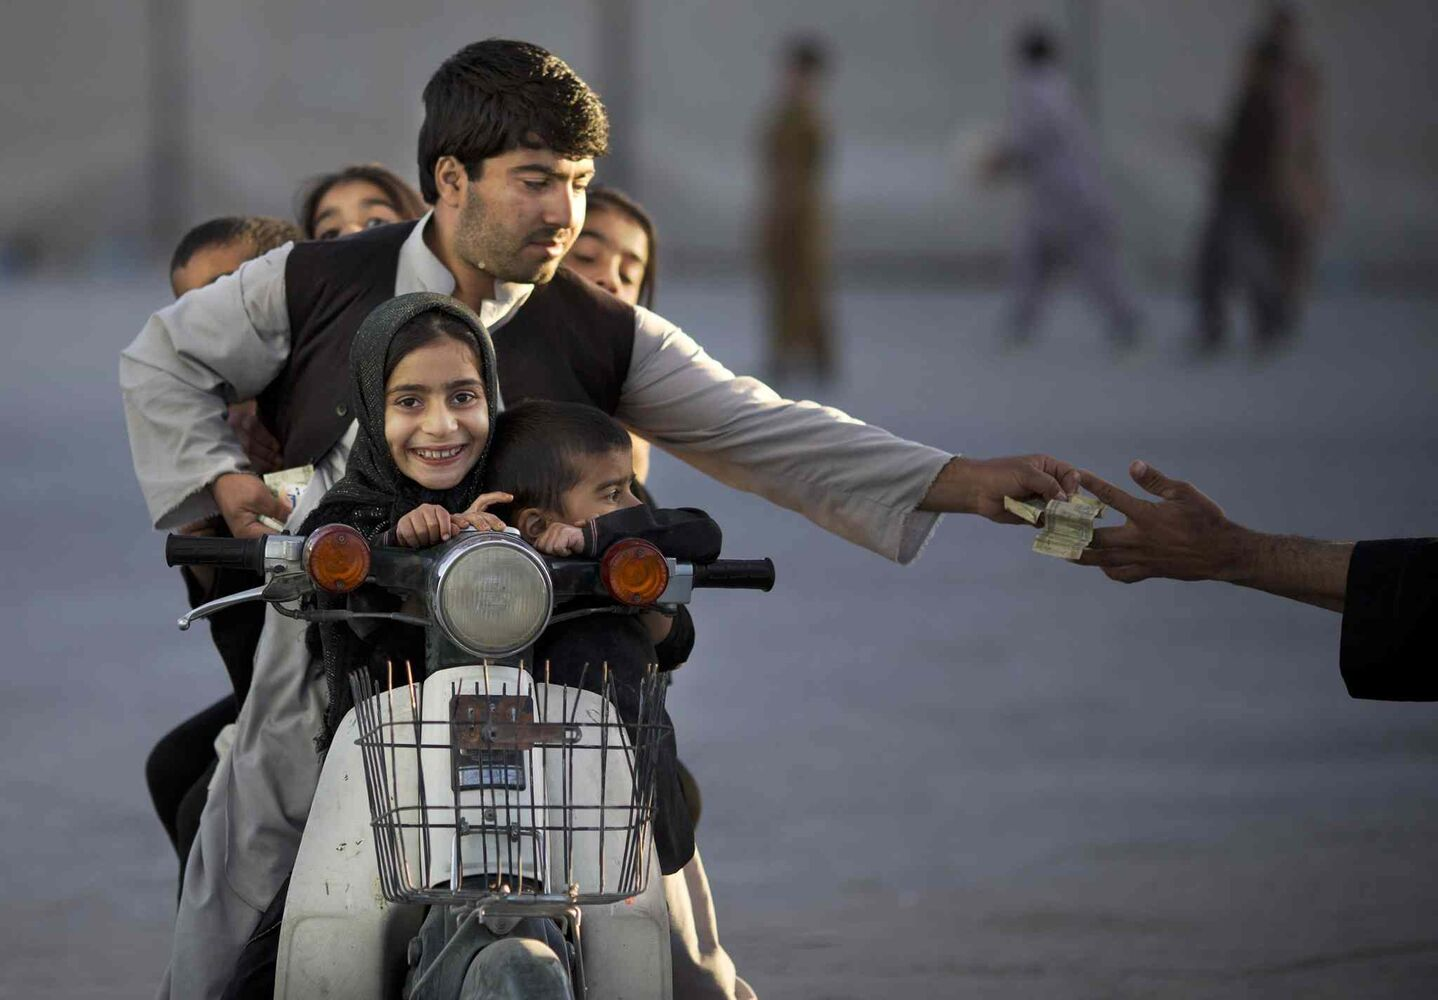 Nov. 1, 2013: An Afghan man with his five children on his motorbike pays money to enter a park in Kandahar, southern Afghanistan.